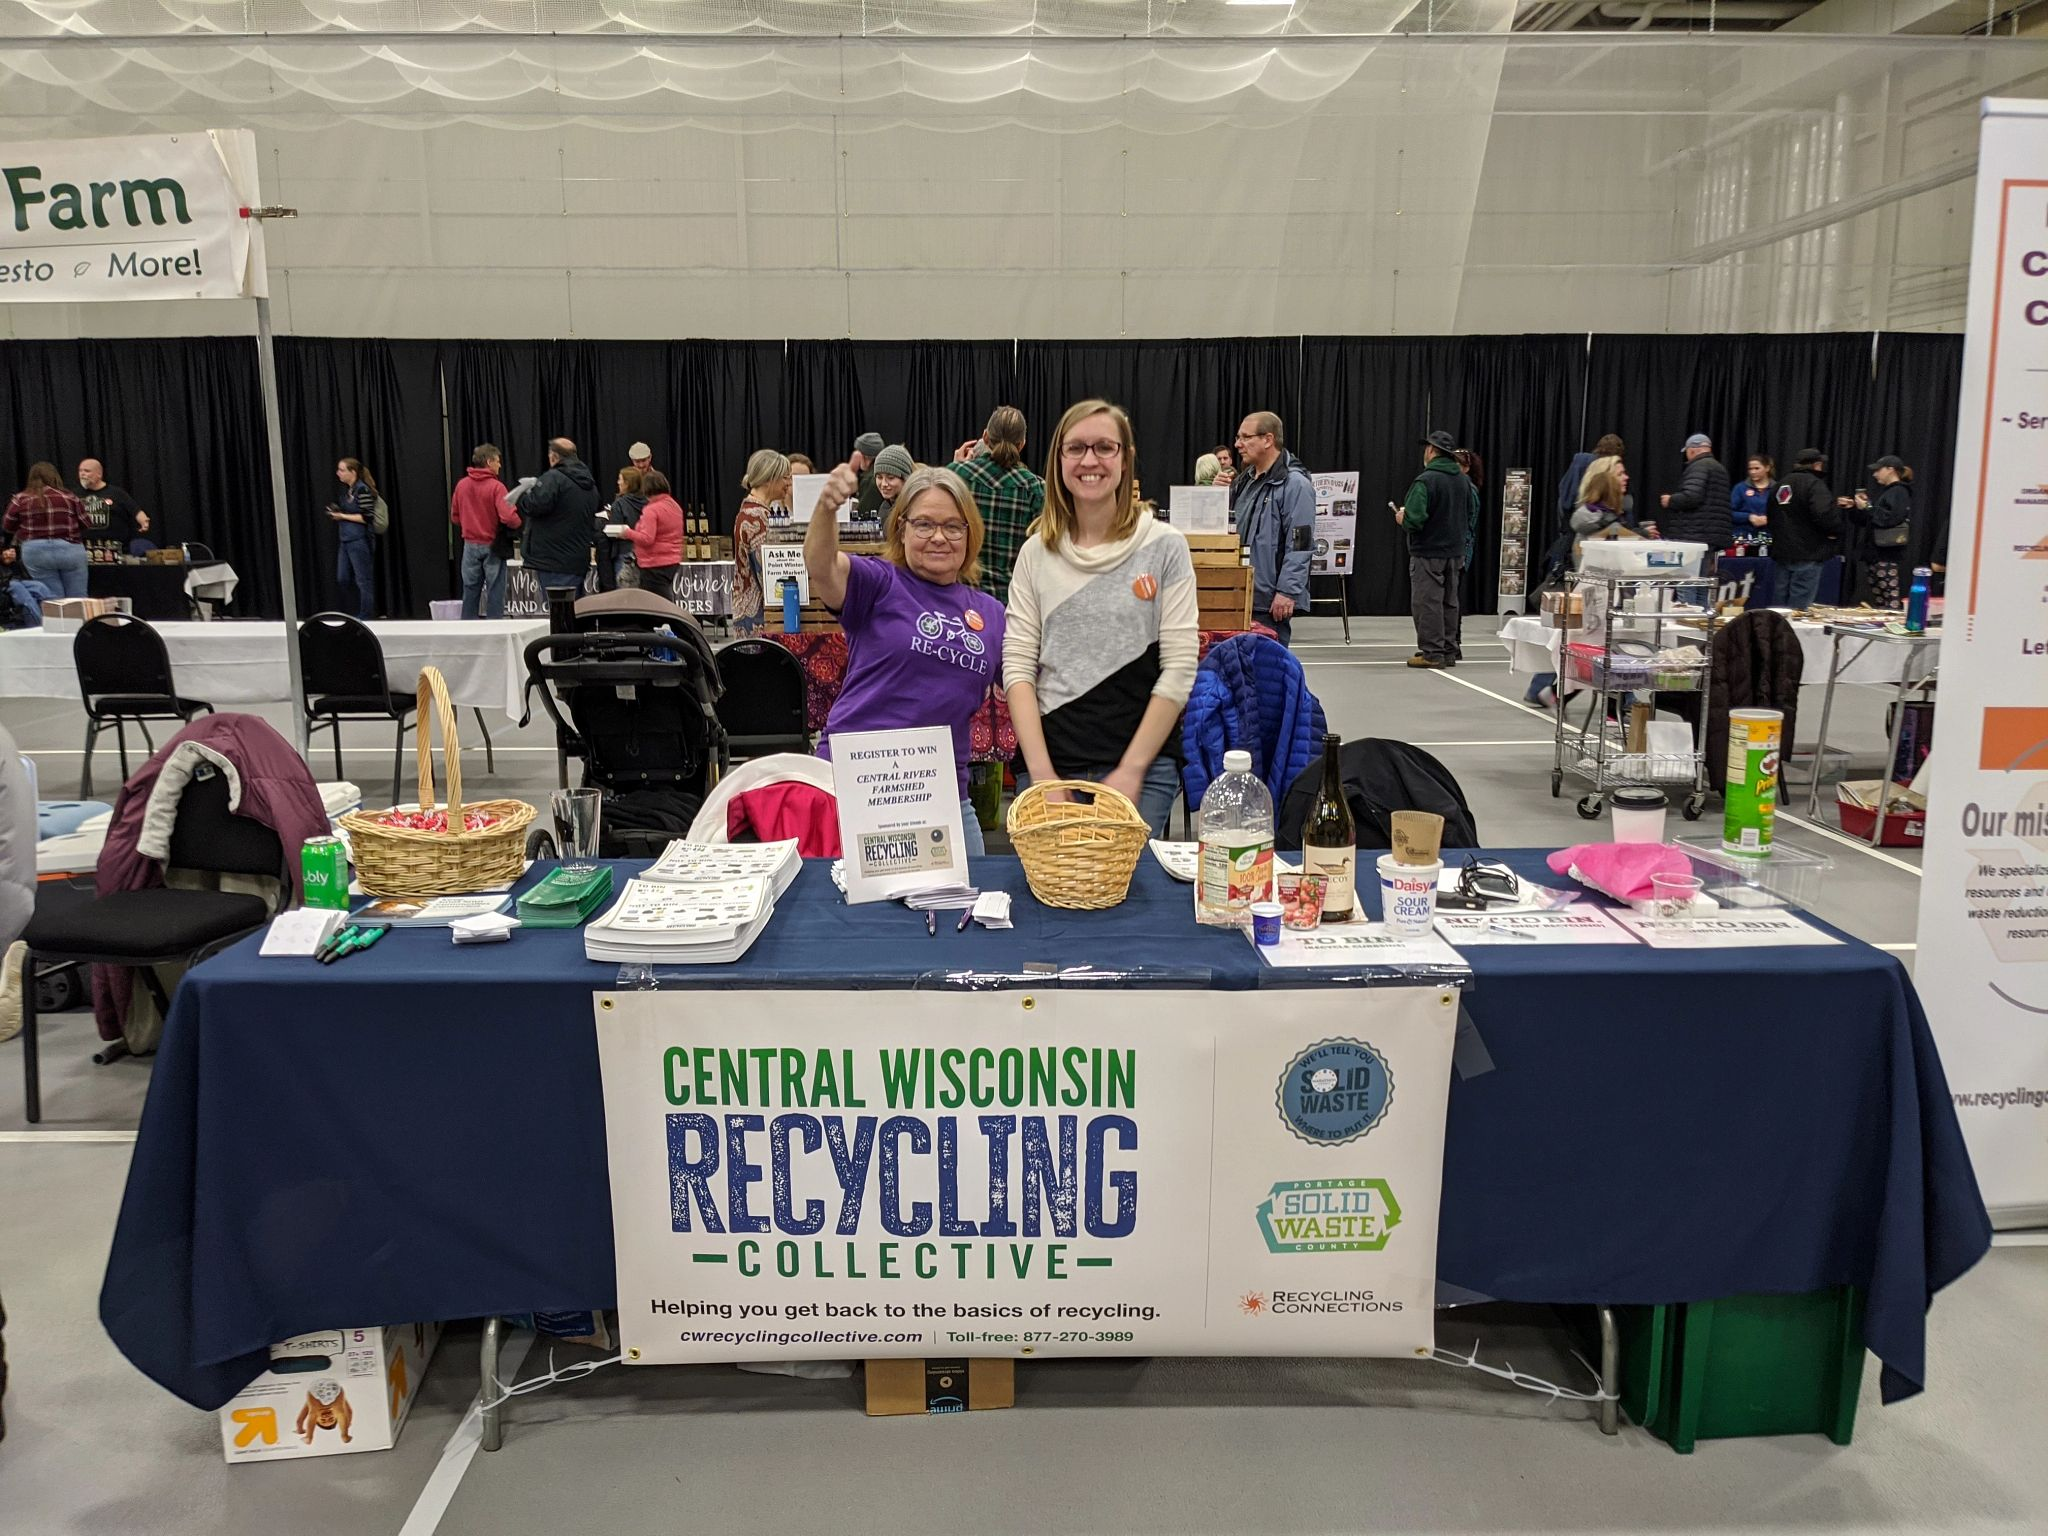 Representatives from the Central Wisconsin Recycling Collective (CWRC) stand in front of their booth.